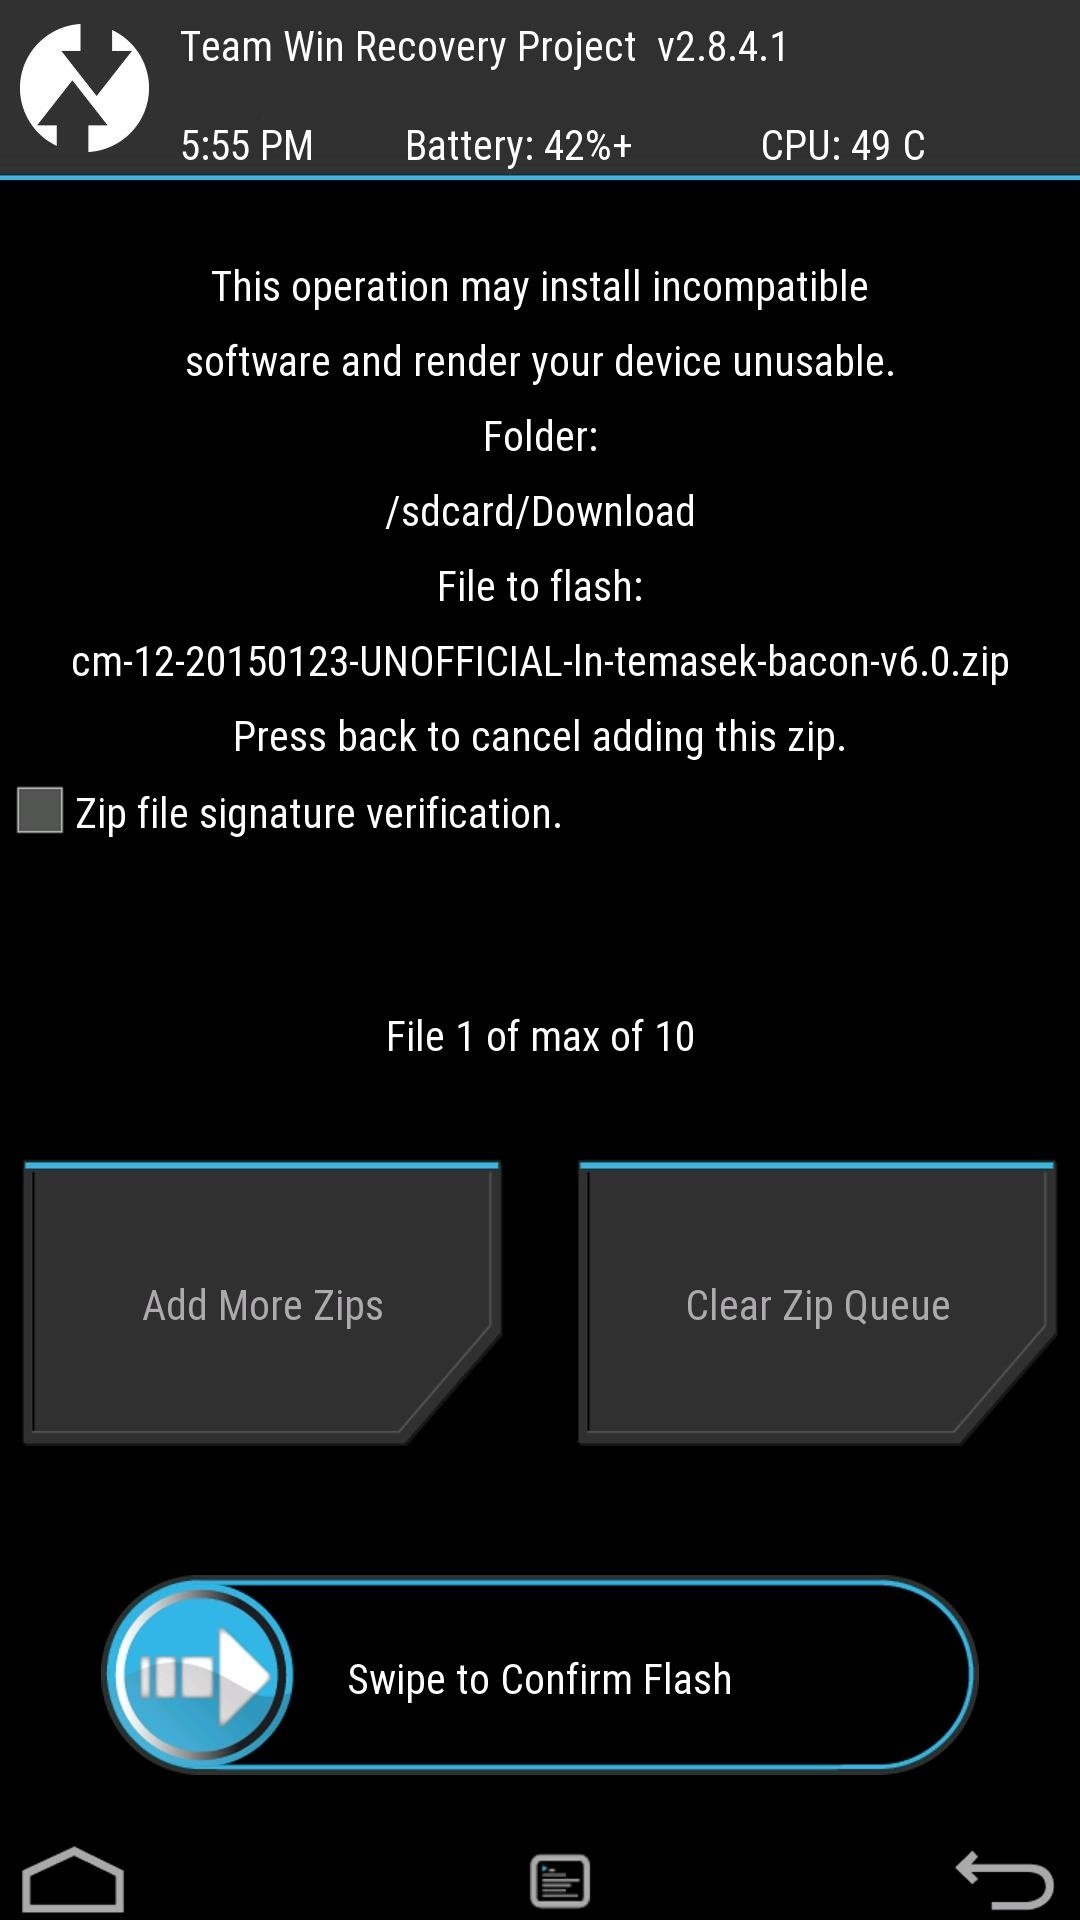 Get Early Access to CyanogenMod 12's Theme Engine on Your OnePlus One